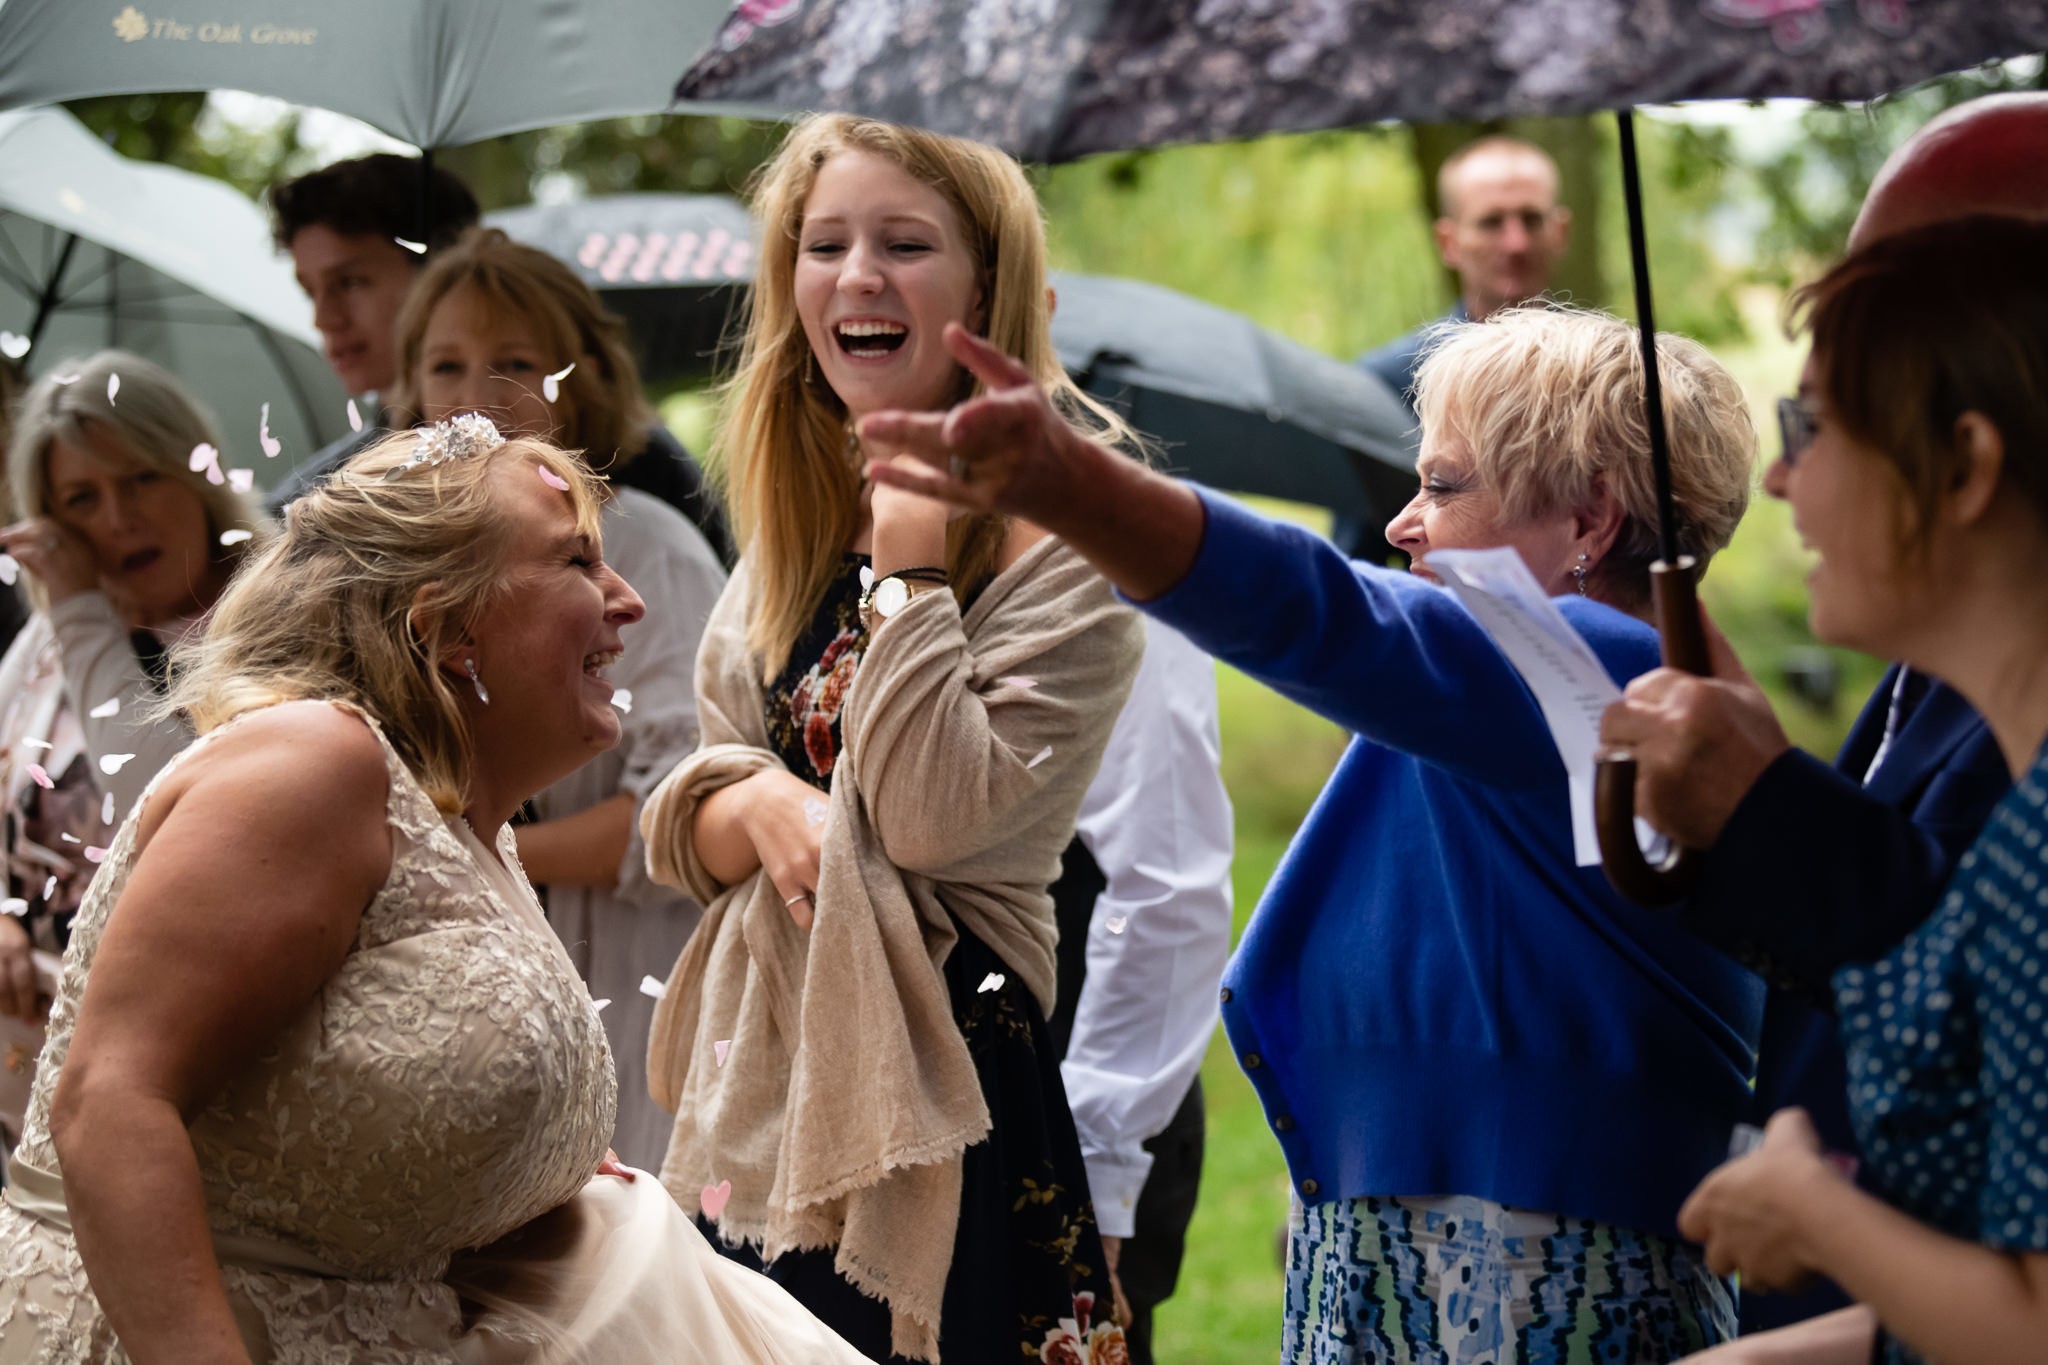 Wedding guest throws confetti on the Bride